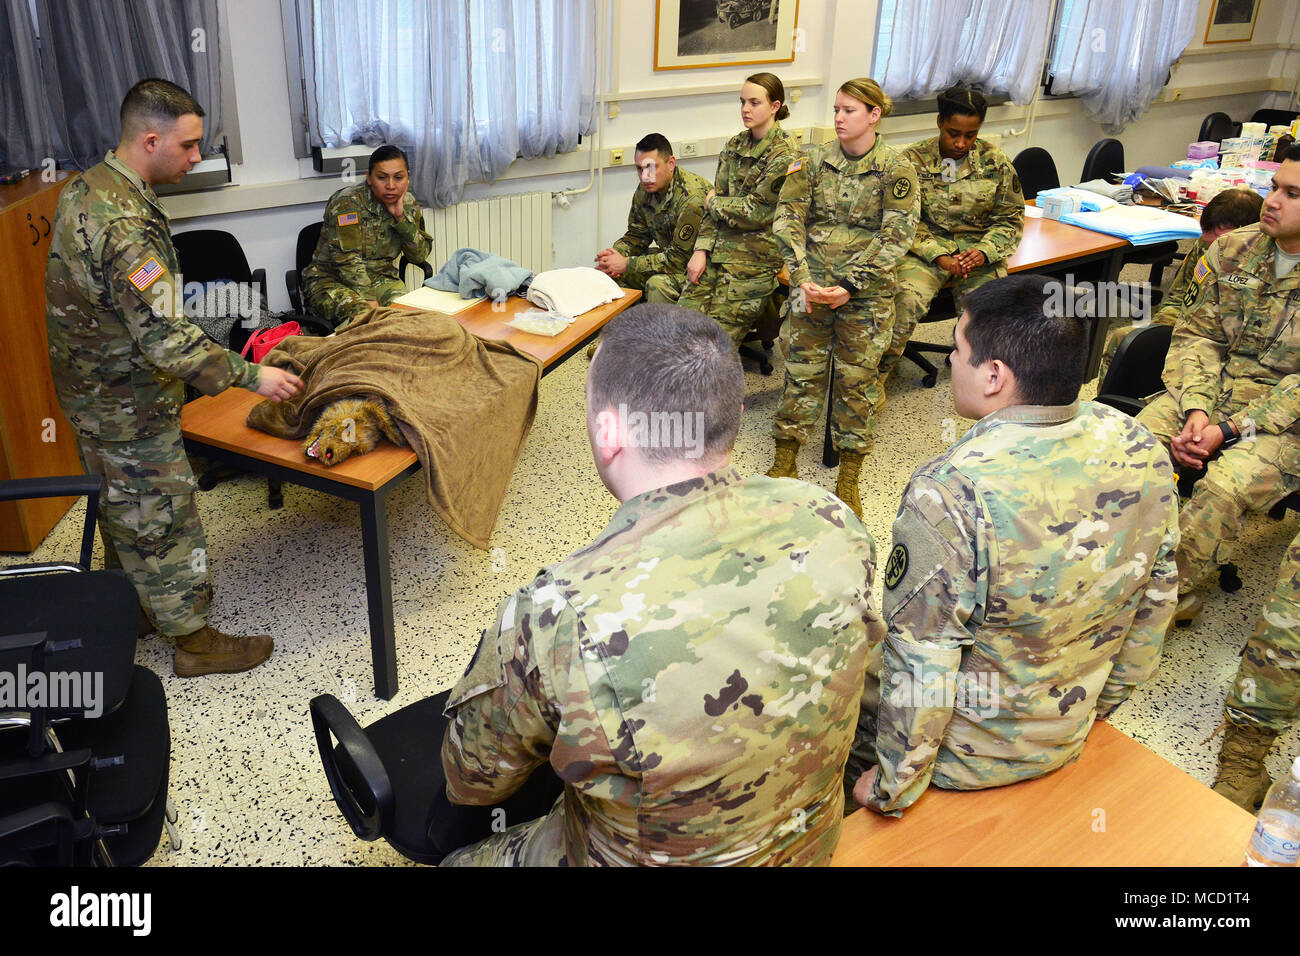 U.S. Army Sgt Manuel Ivan Cervantes, animal care NCO, USARMY MEDCOM PH-E , demonstrate how preventing hypothermia during training Public Health Activity Italy Animal Care Specialists at Caserma Pluto, Longare, Vicenza, 12 Feb. 2018. Once the animal is intubated their heart and respiratory rate, blood oxygenation rate and carbon dioxide levels are monitored to make sure they're not too excessively sedated during surgery. (U.S. Army Photo by Paolo Bovo) - Stock Image